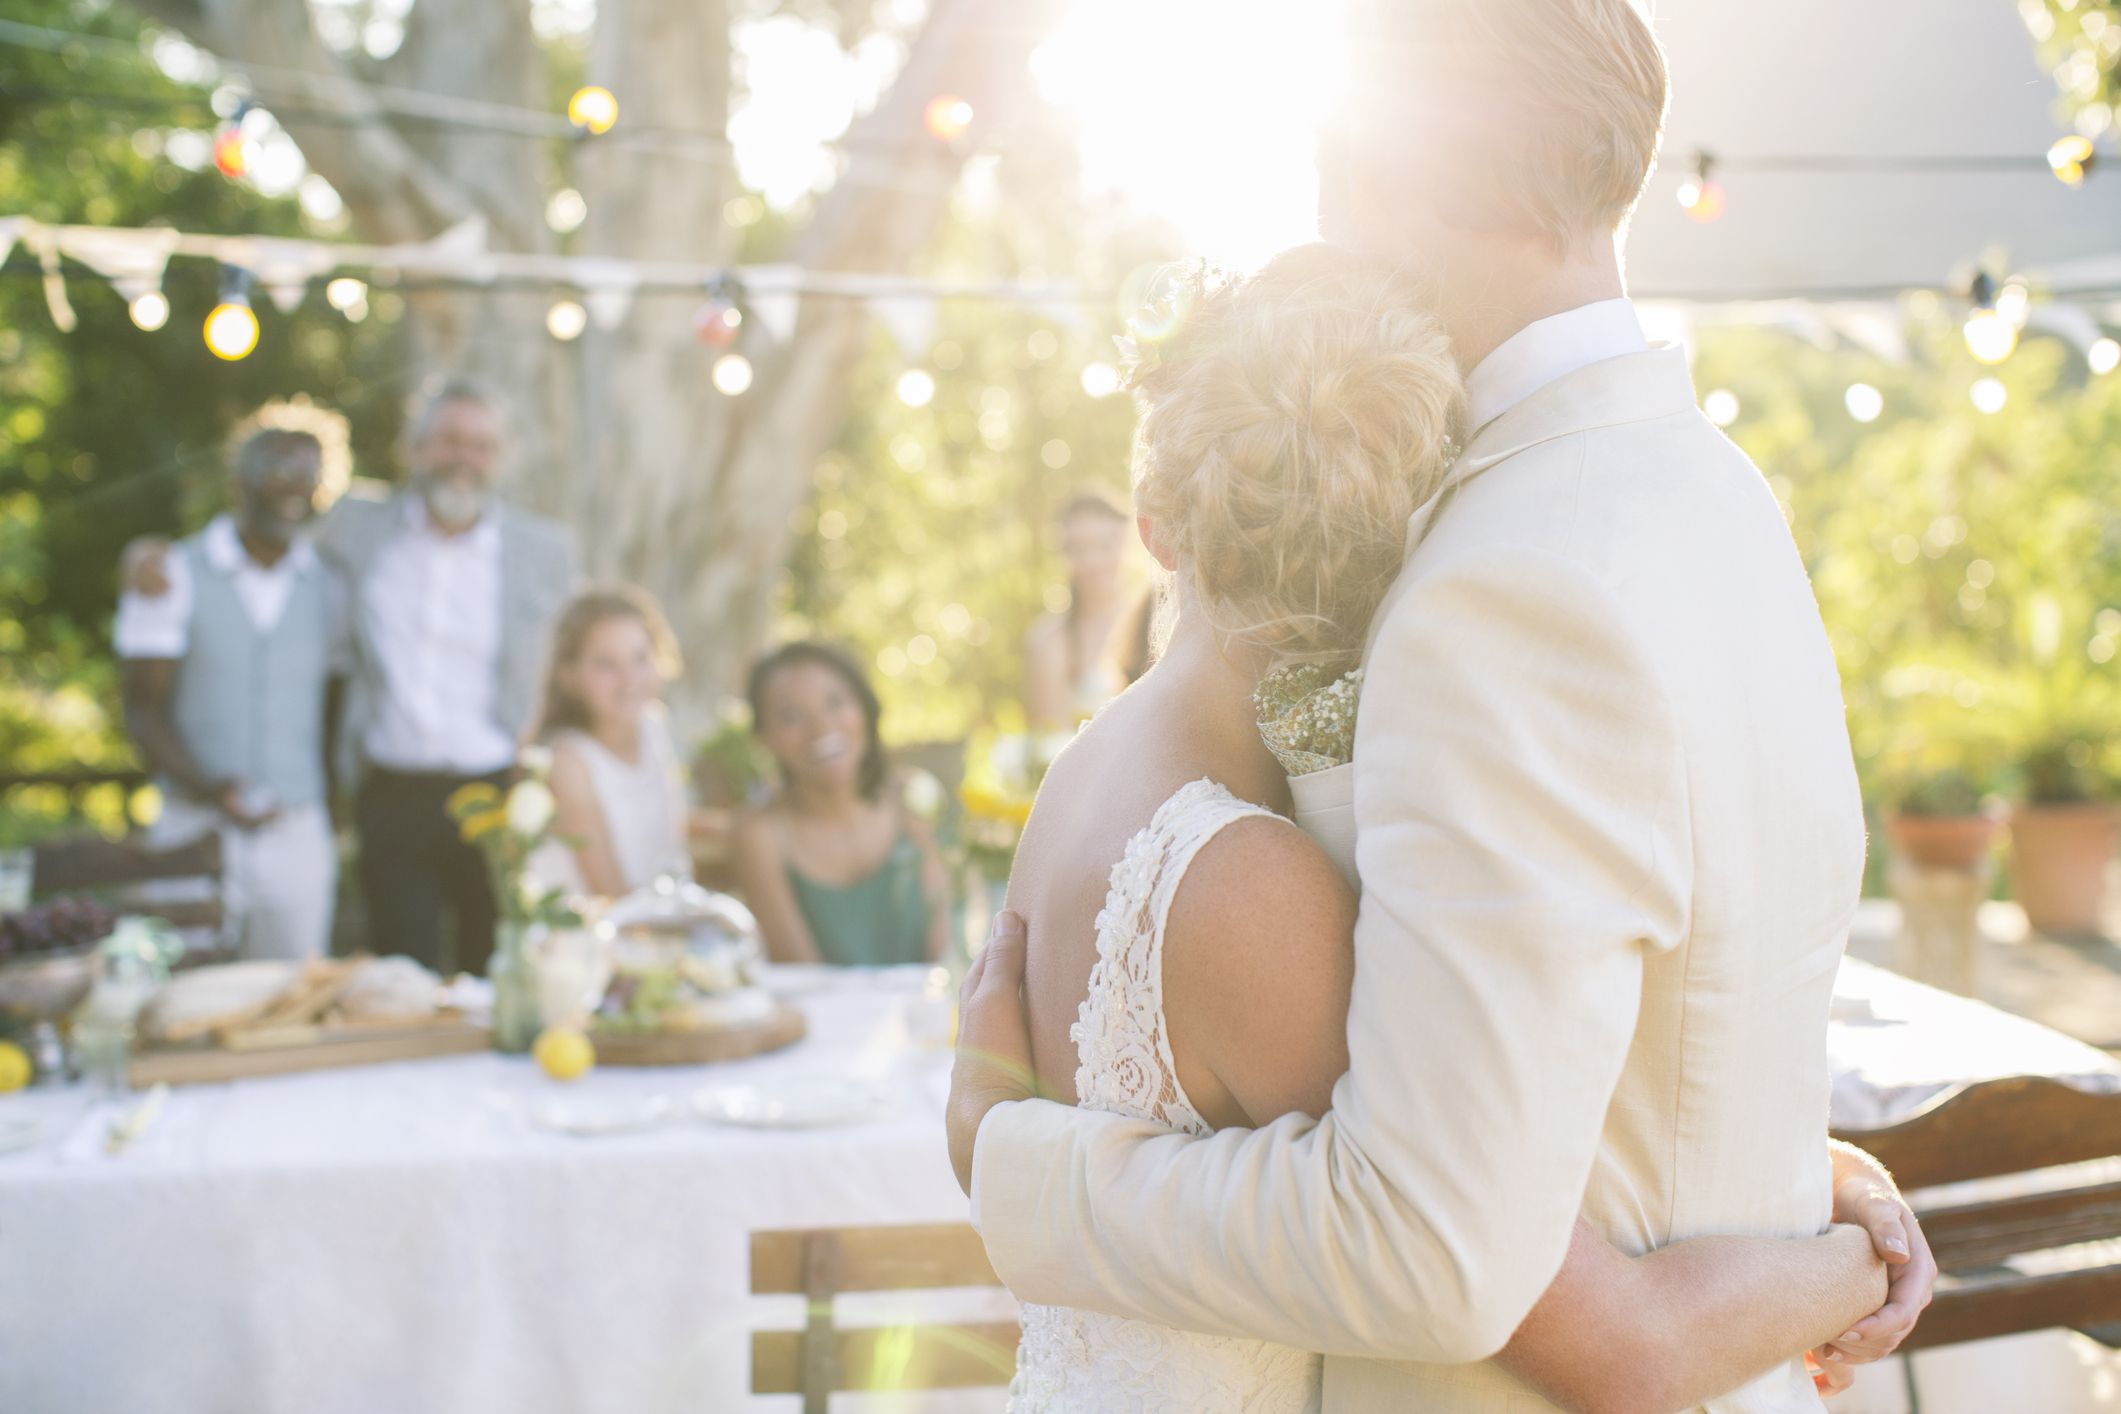 10 Frequently Asked Questions About Weddings